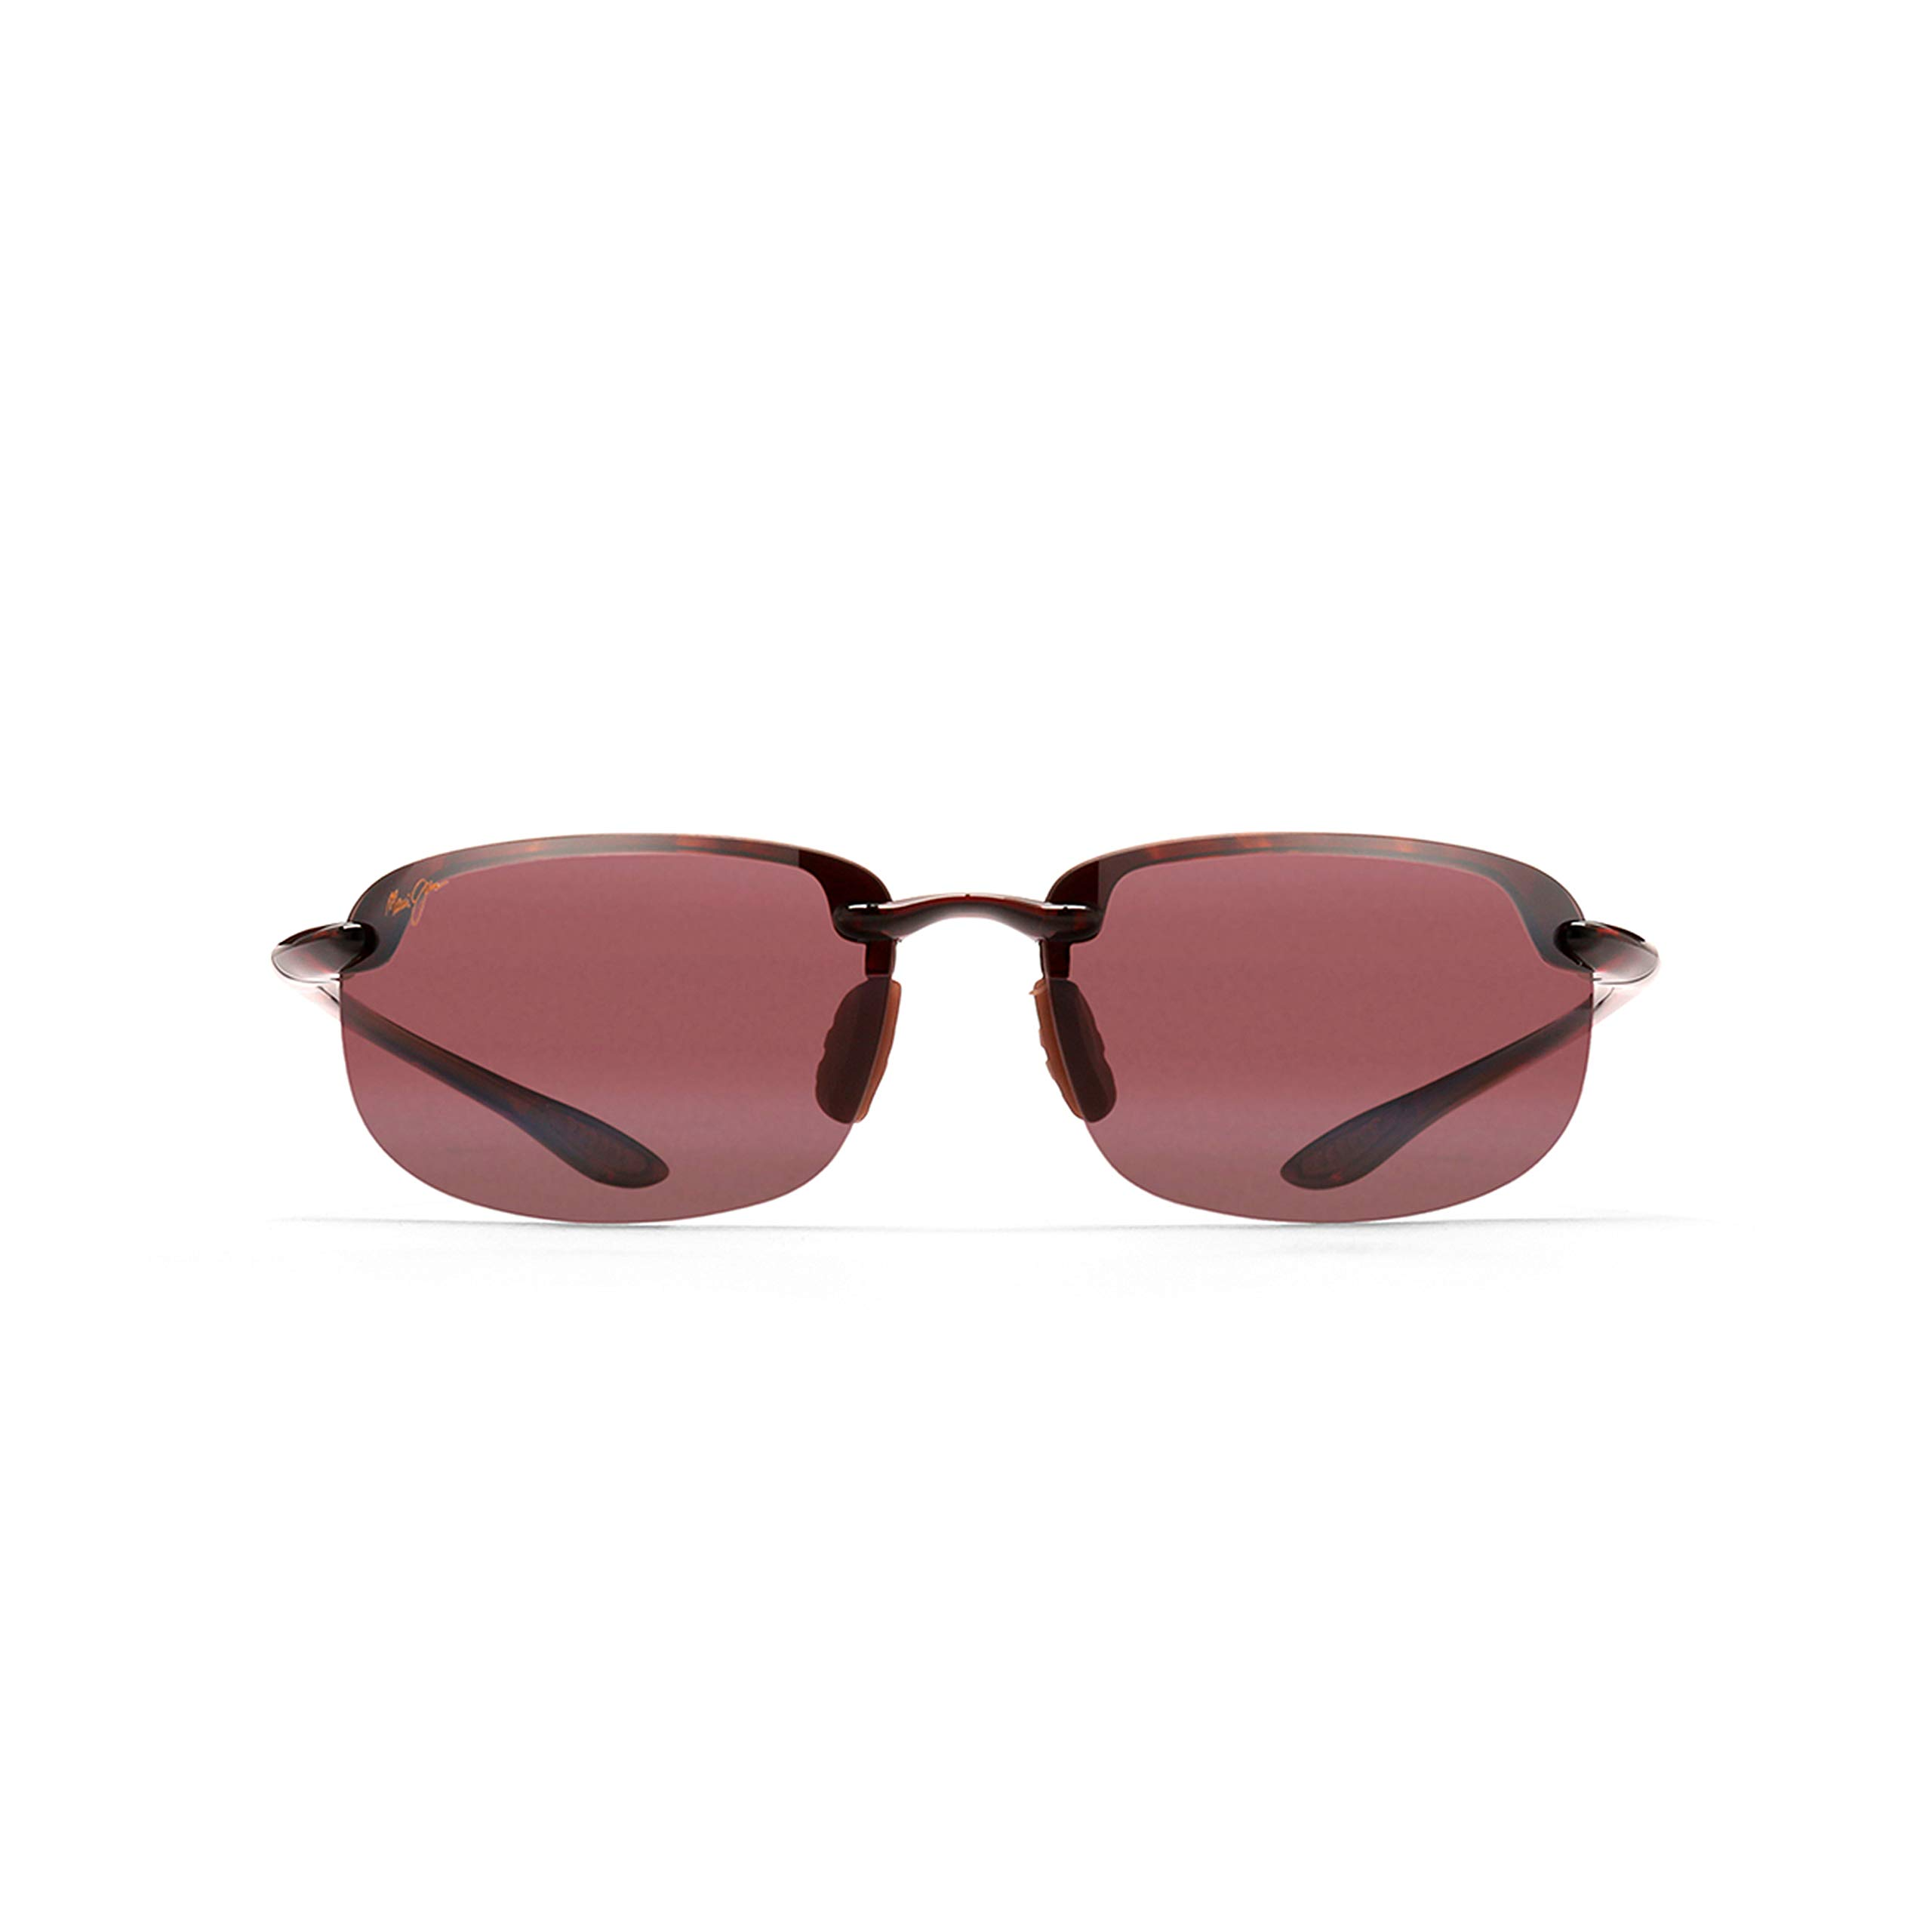 8ca31cc8822 Best Rated in Sunglasses   Helpful Customer Reviews - Amazon.com